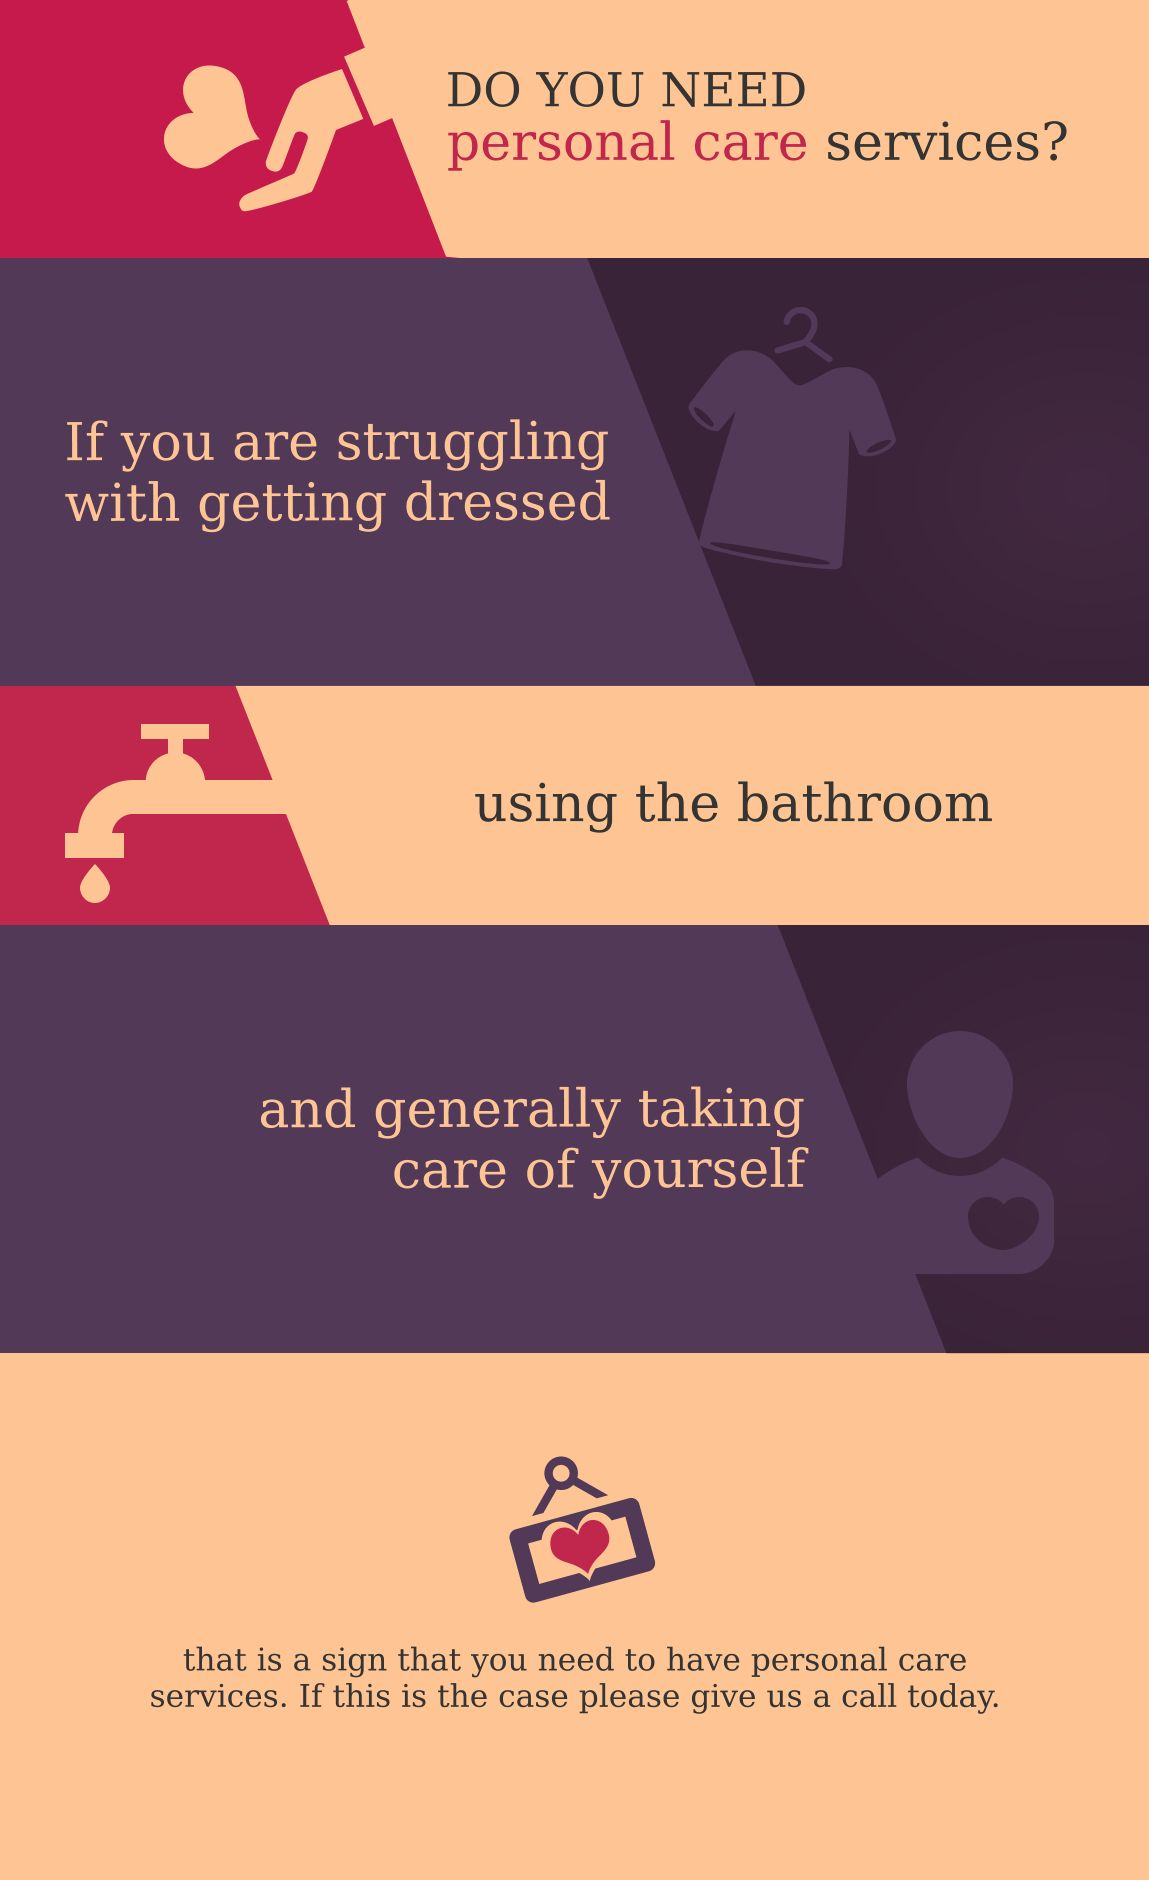 [INFOGRAPHIC] Signs that You Need Personal Care Services